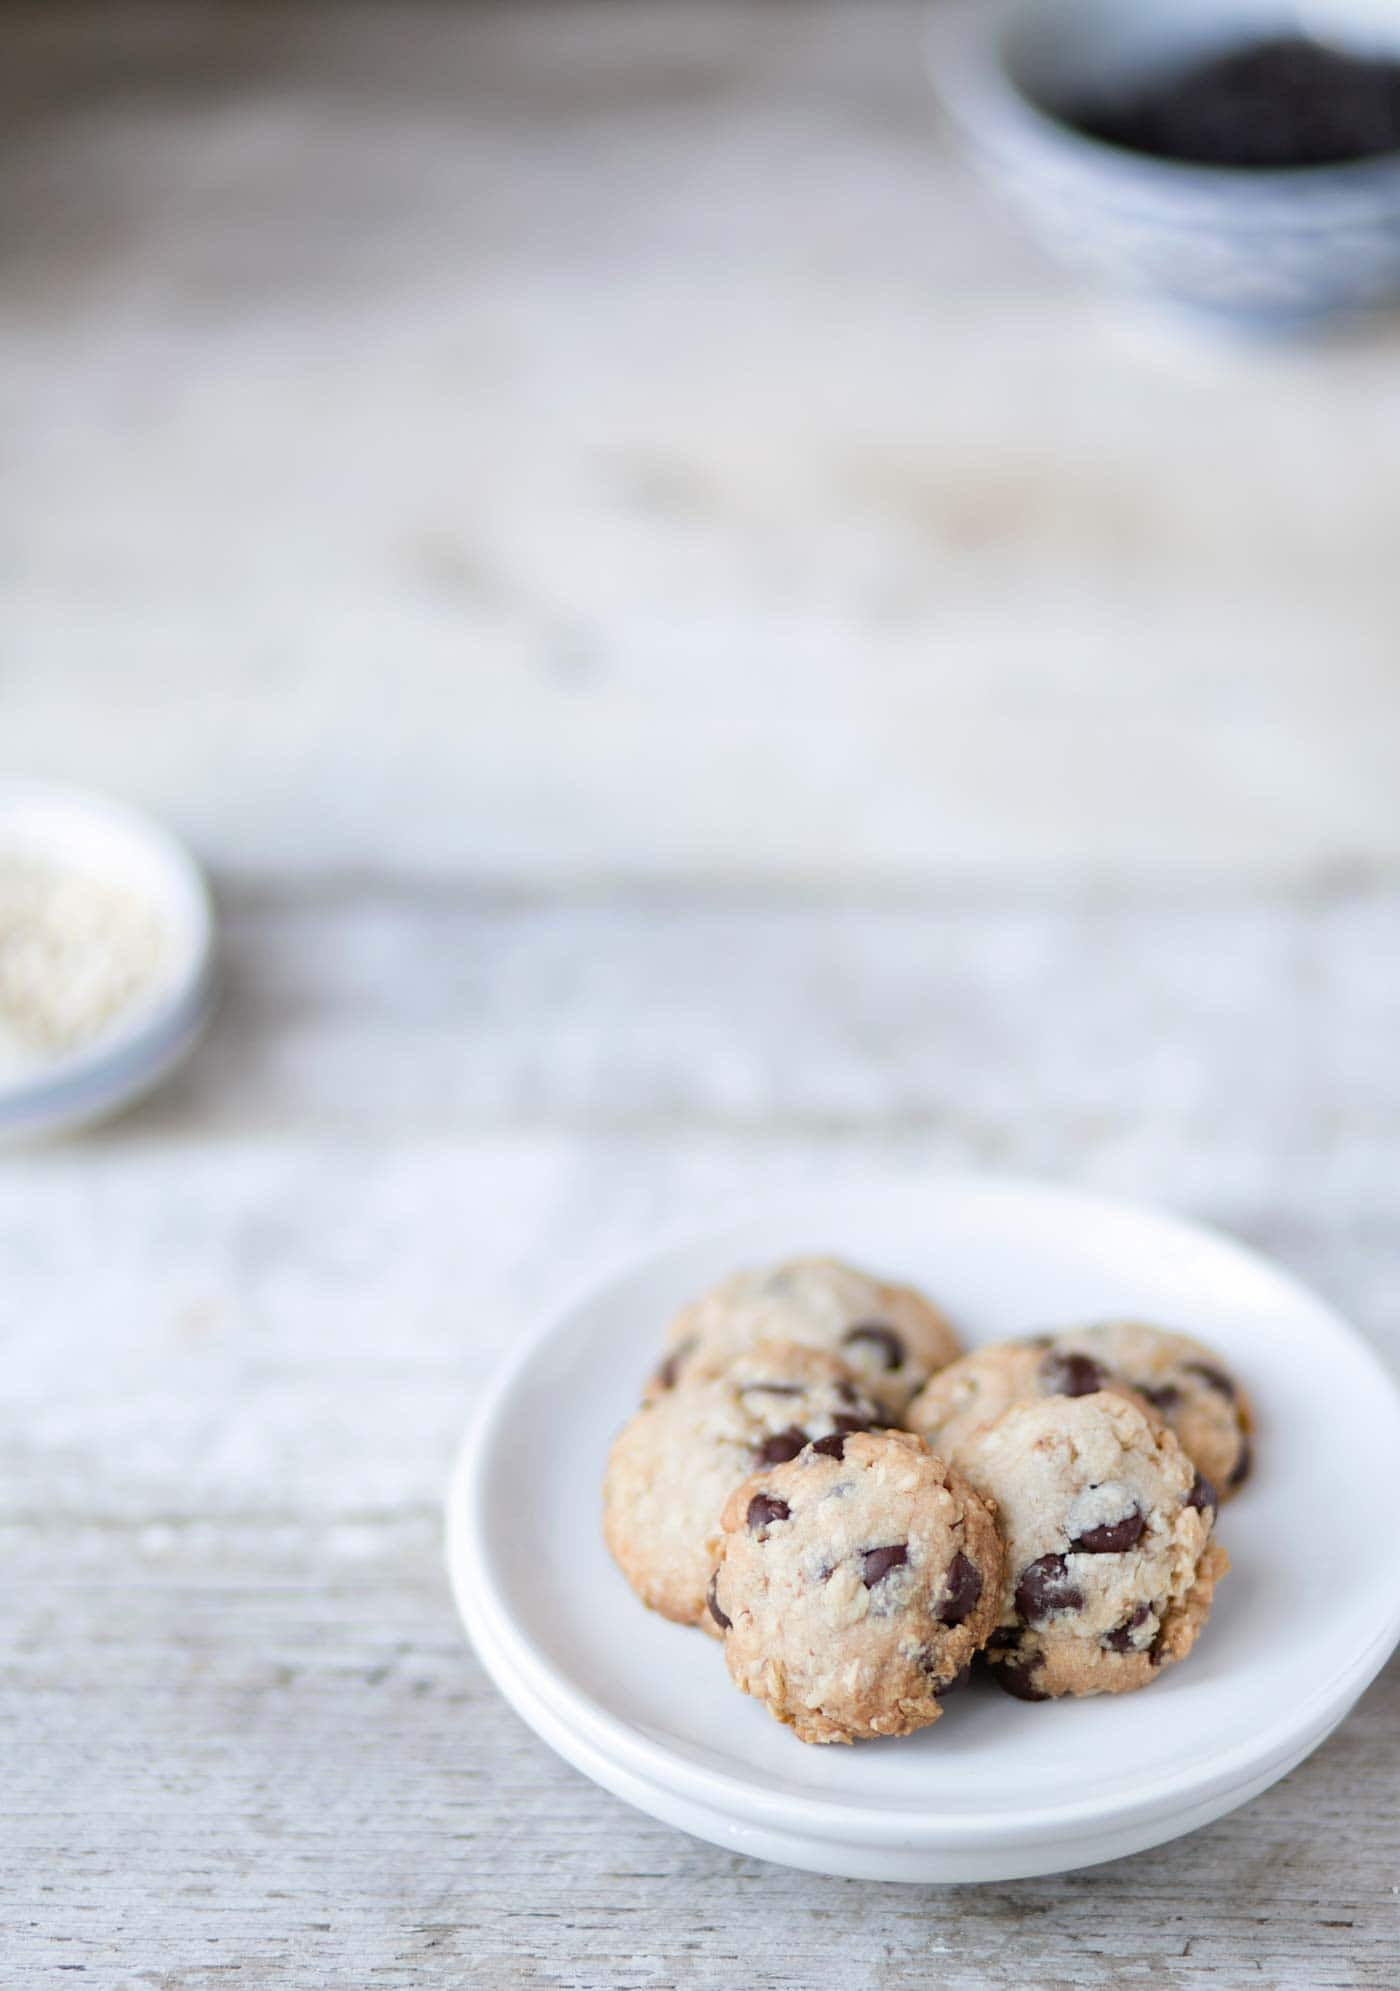 Chocolate Chip Oatmeal Shortbread Cookies are delicate, flaky & buttery. This easy recipe uses 6 basic ingredients that you probably already have on hand! Get the recipe from SavorySimple.net.